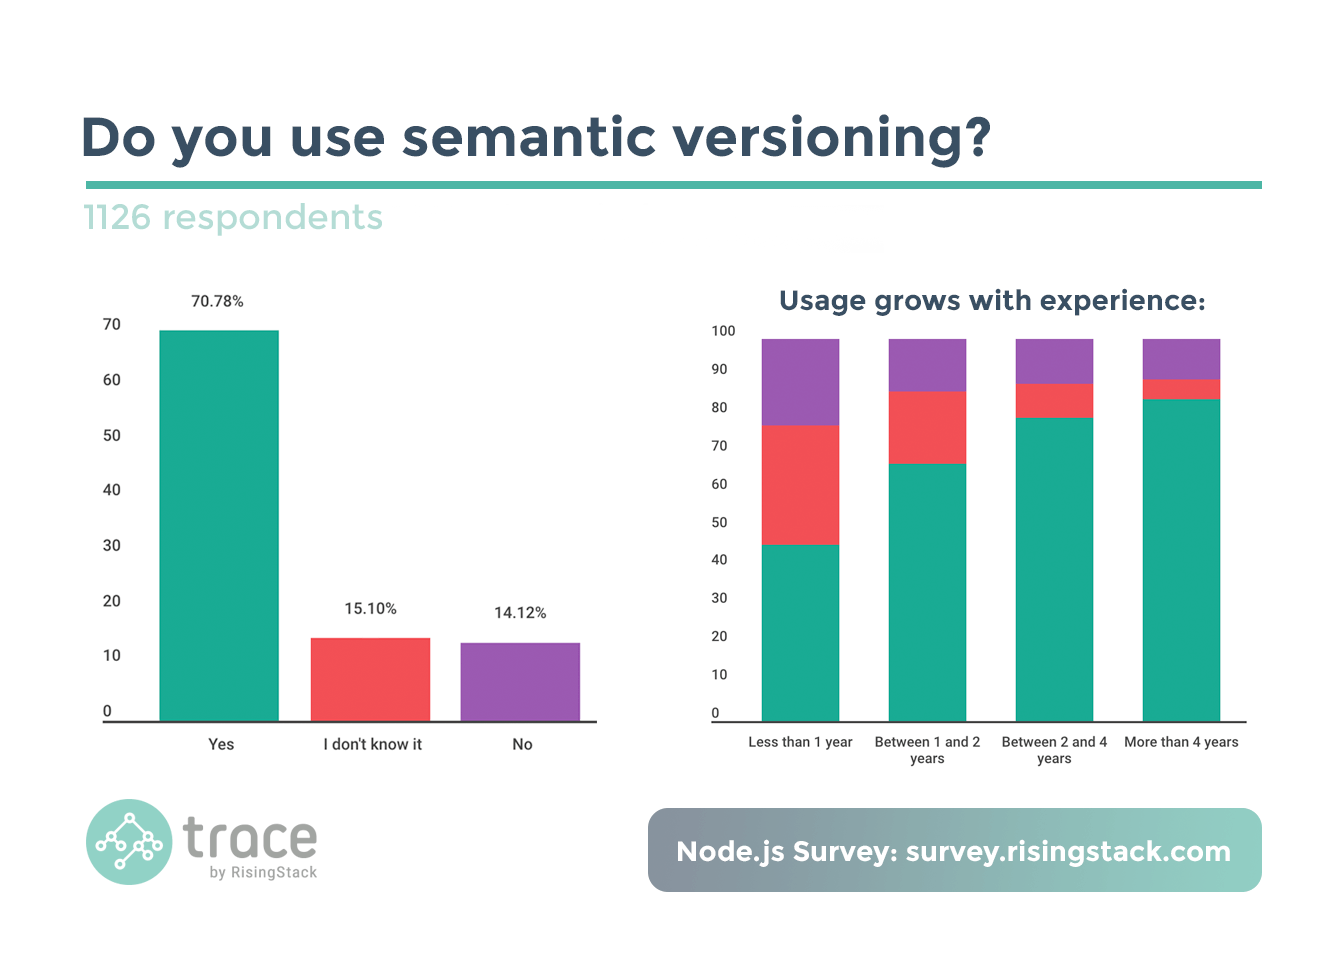 Node.js Survey - Do you use semantic versioning? Mostly yes.